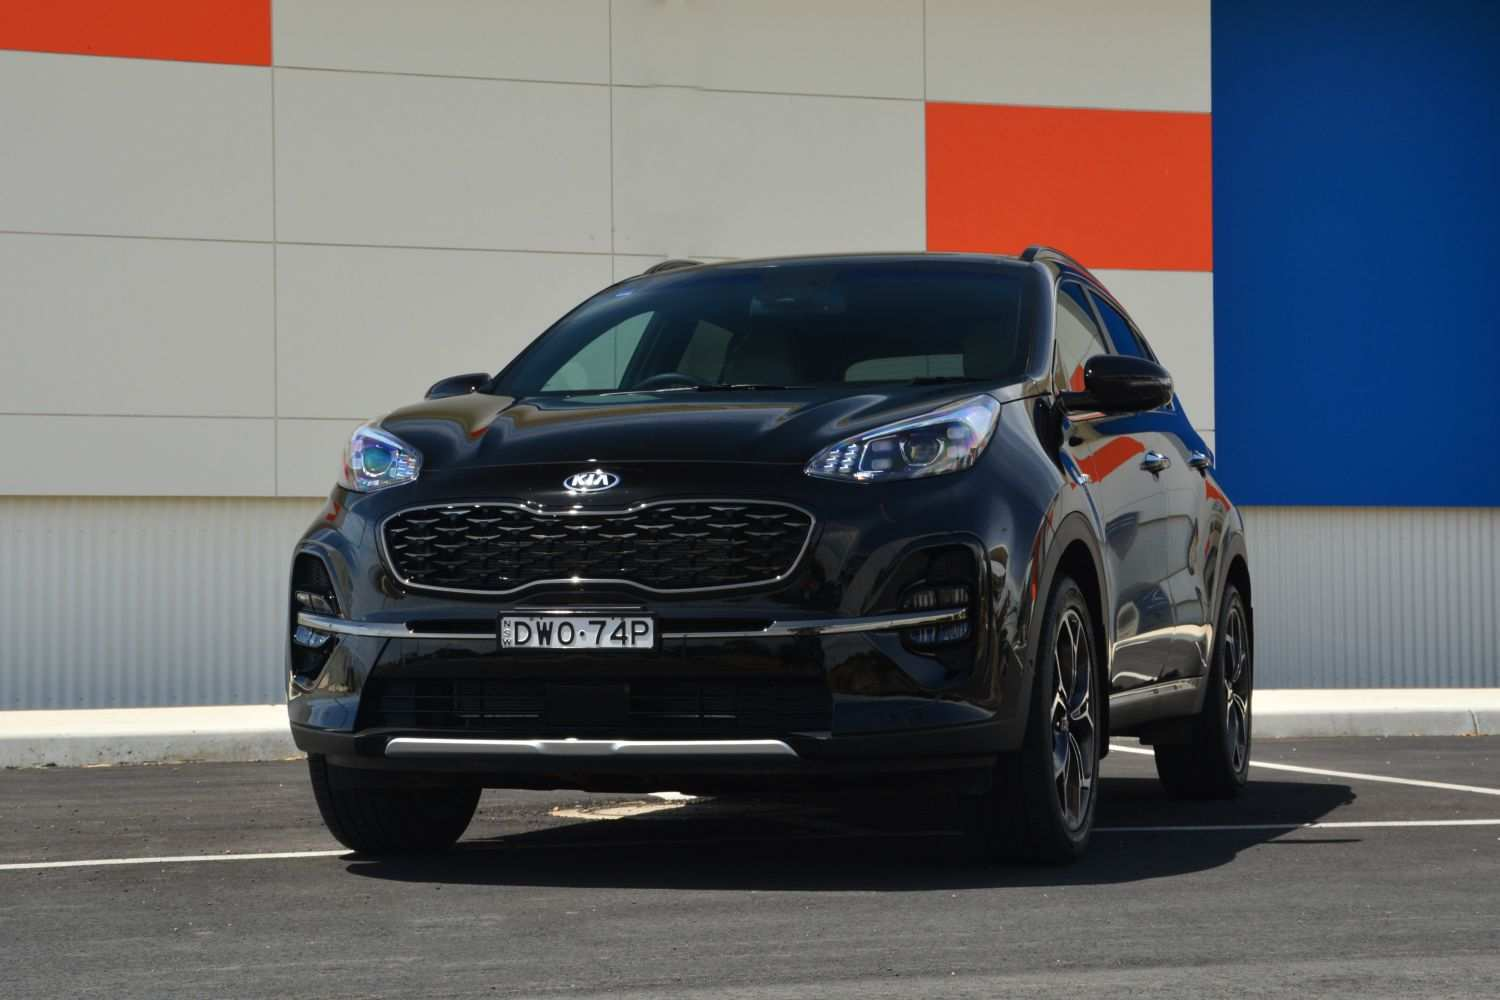 90 Great The Kia Sportage Gt Line 2019 Review And Specs Spy Shoot by The Kia Sportage Gt Line 2019 Review And Specs